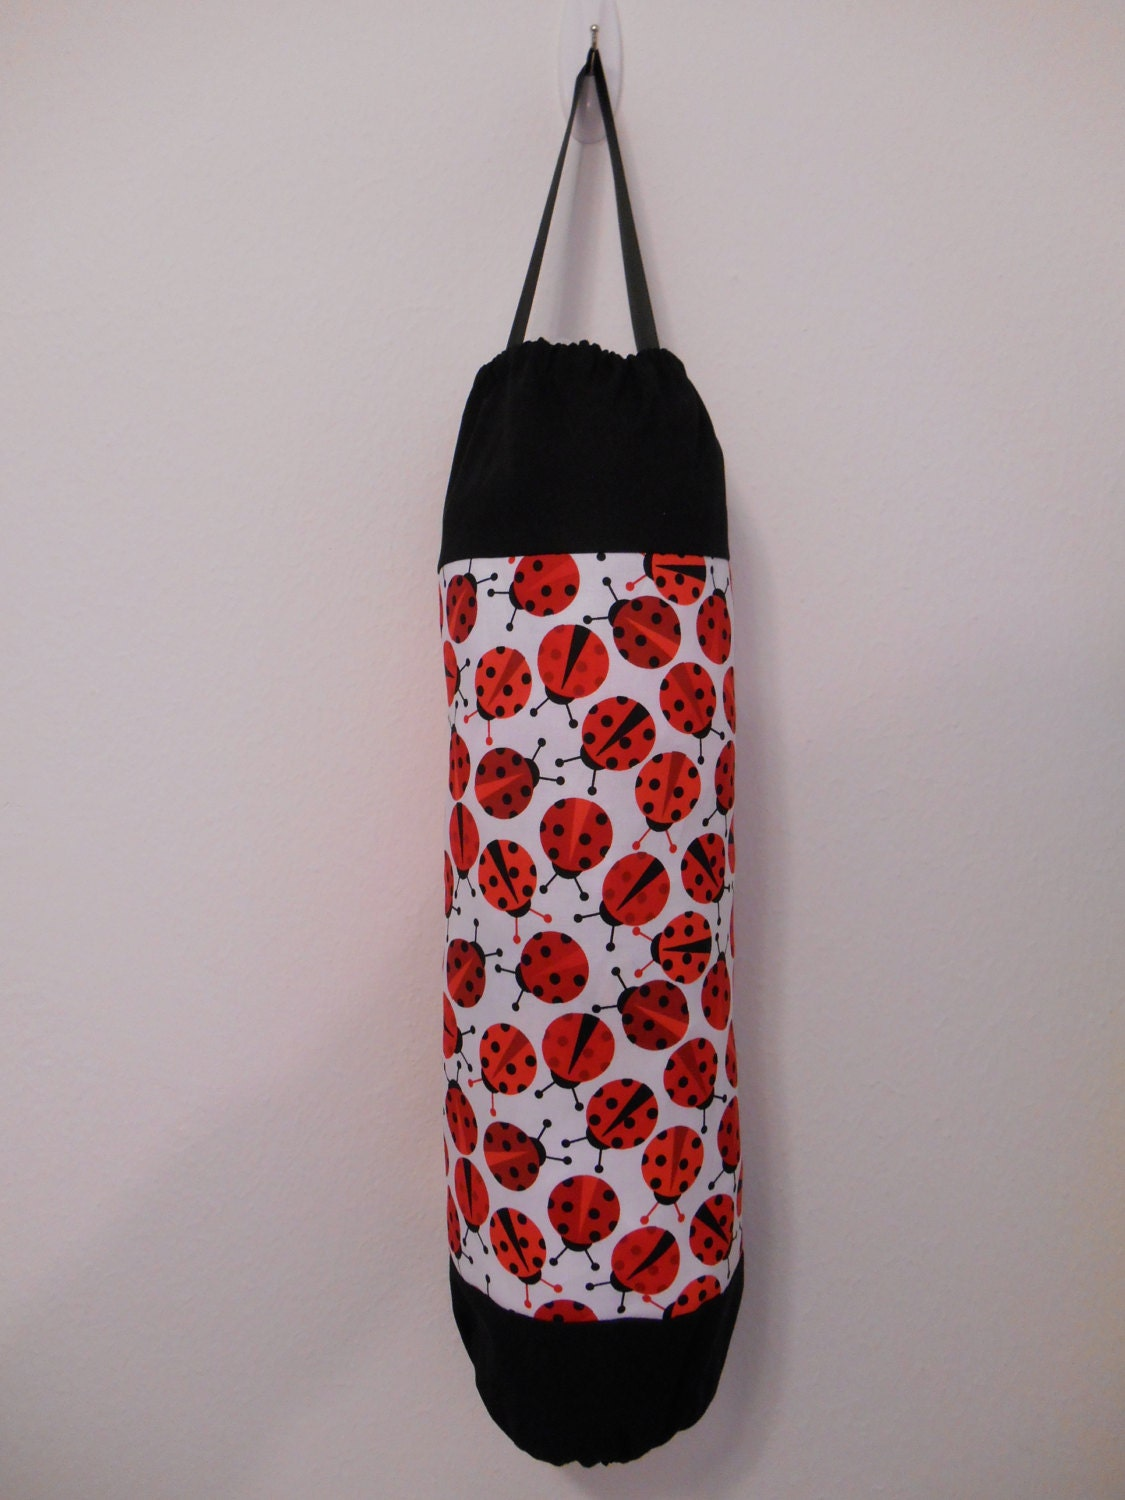 Plastic bag holder grocery dispenser red and black